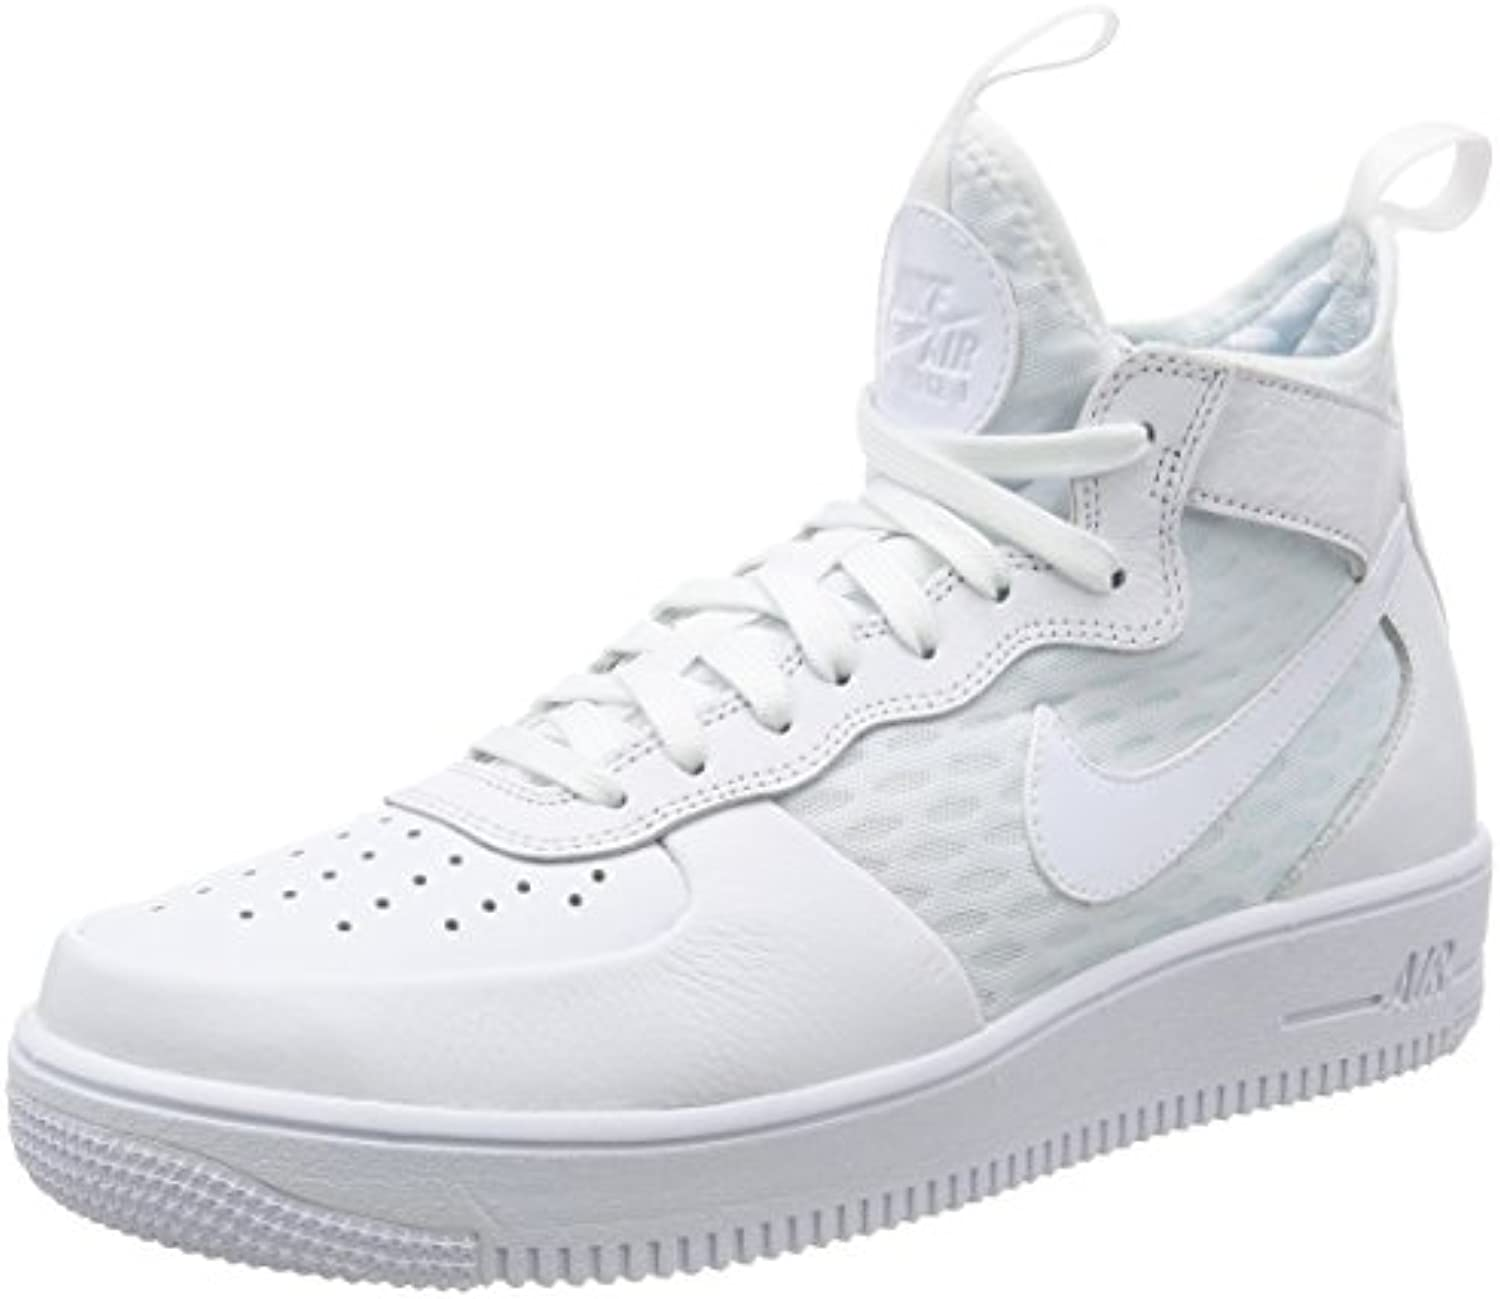 Nike Air Force 1 Ultraforce Mid Sneaker Turnschuhe Schuhe für Herren